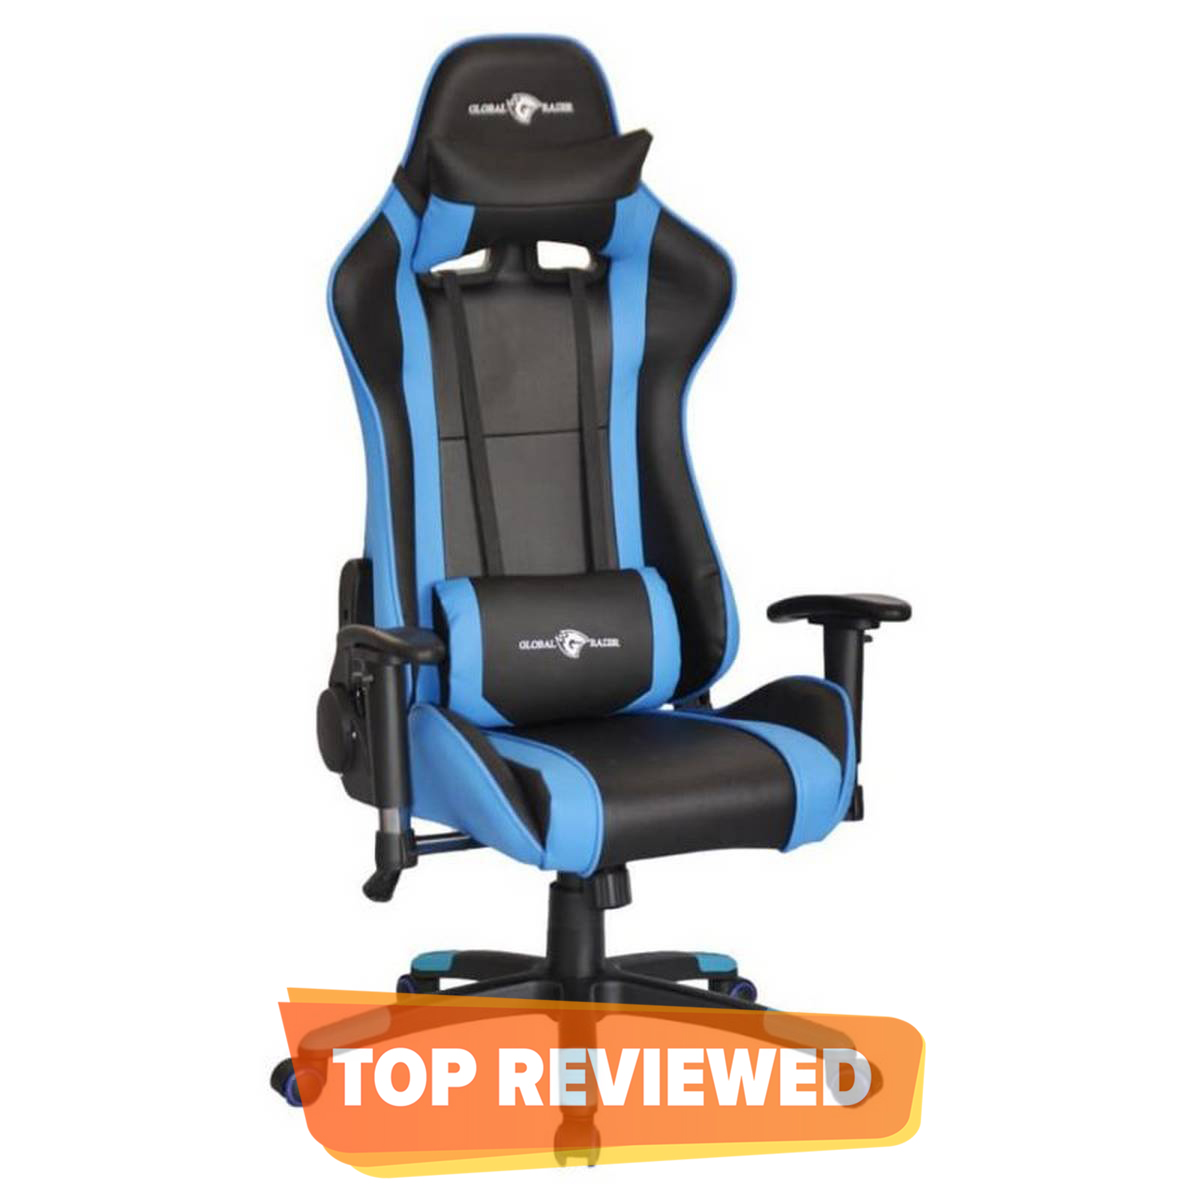 RAZER - Imported Gaming Chair